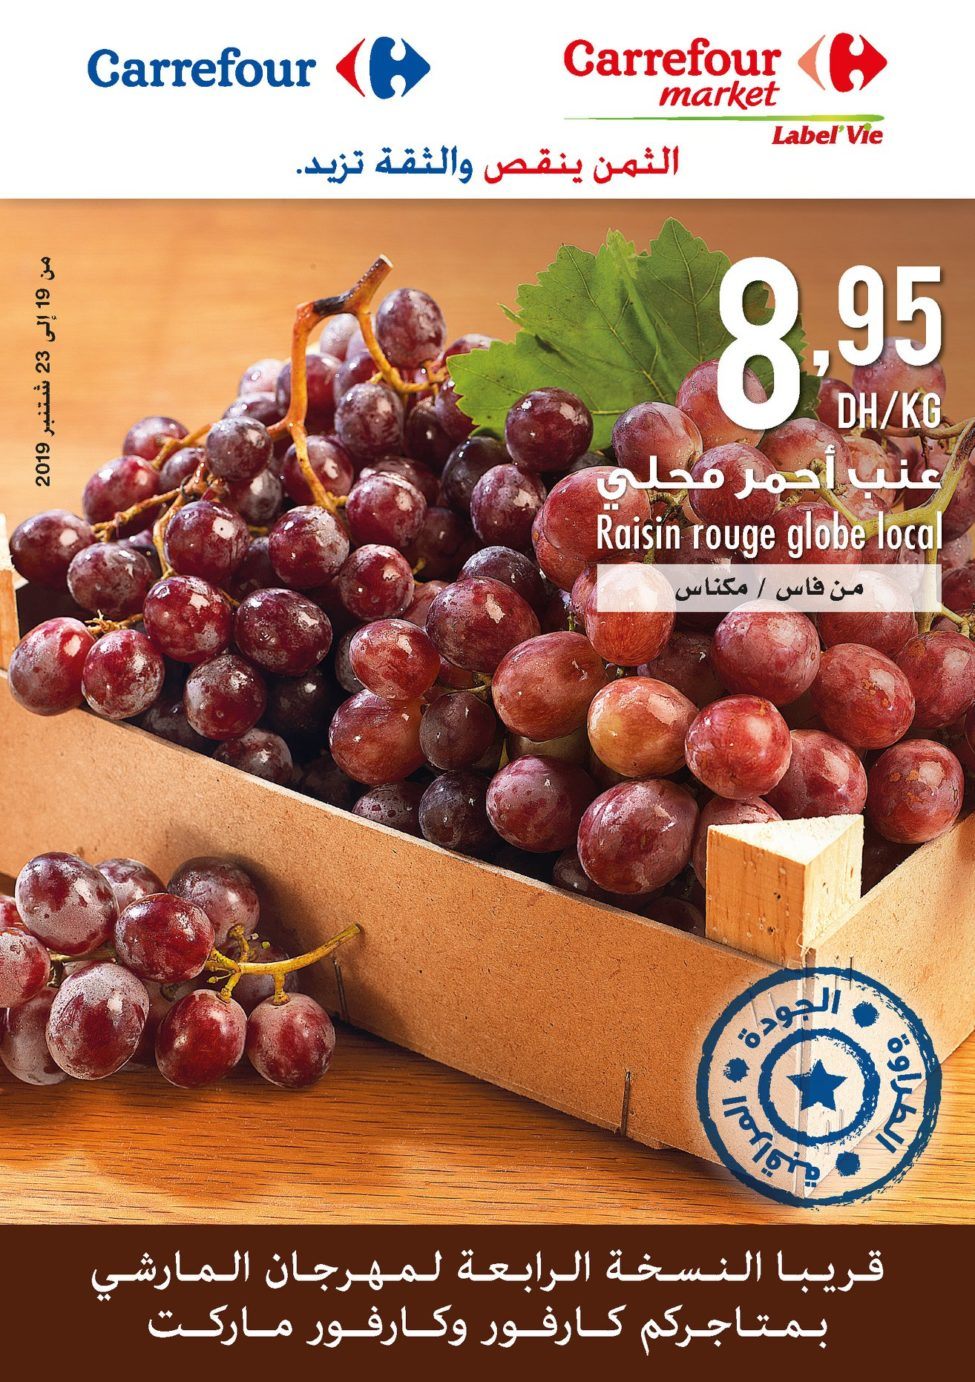 Catalogue Carrefour Market Fruits et Légumes du 19 au 23 Septembre 2019